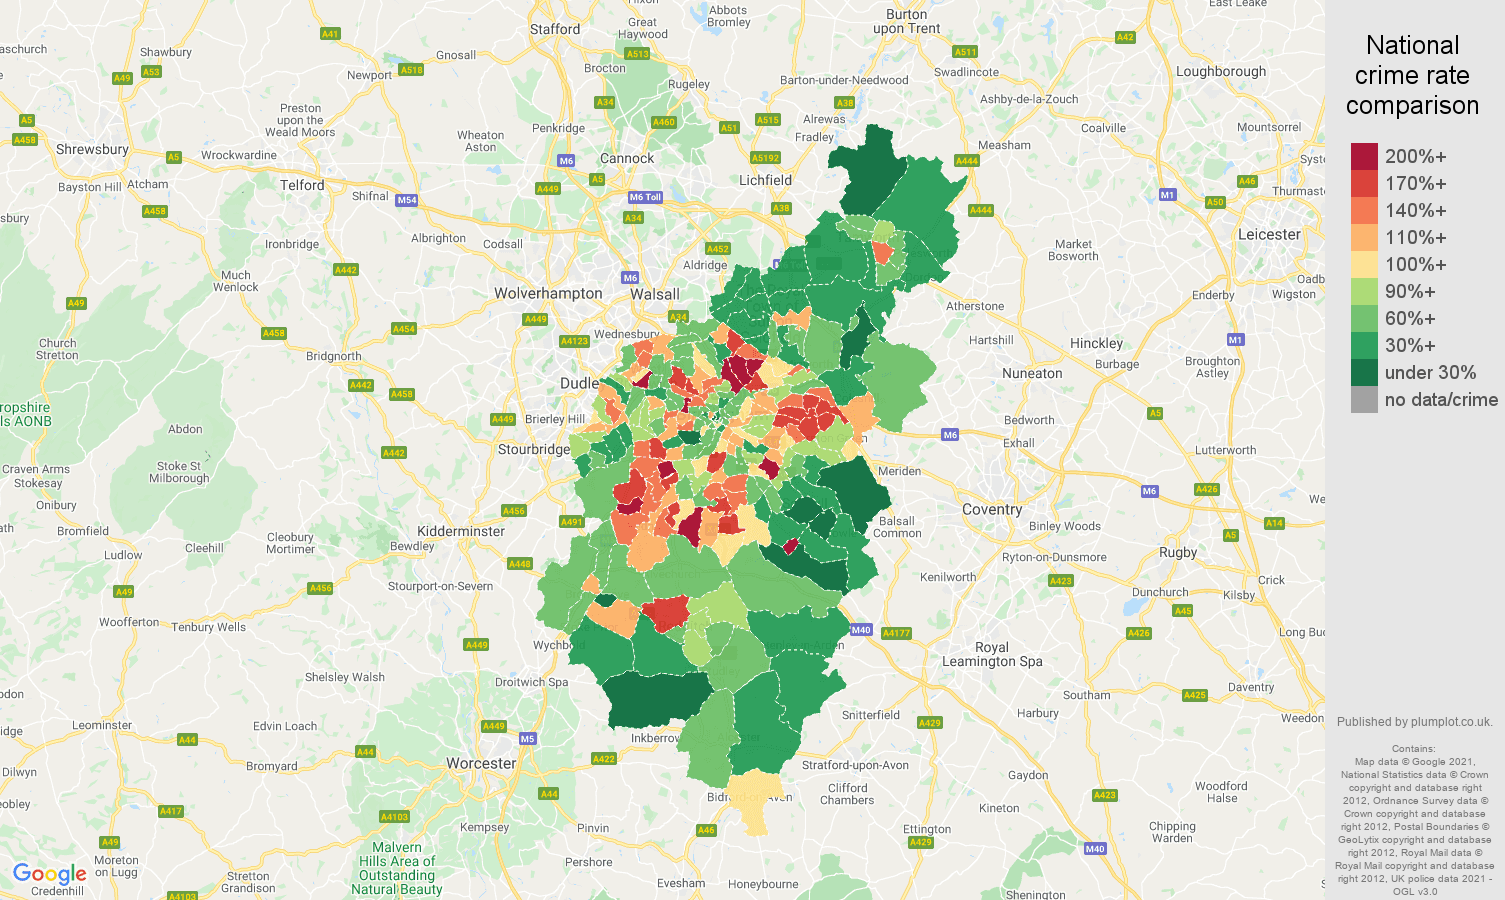 Birmingham criminal damage and arson crime rate comparison map